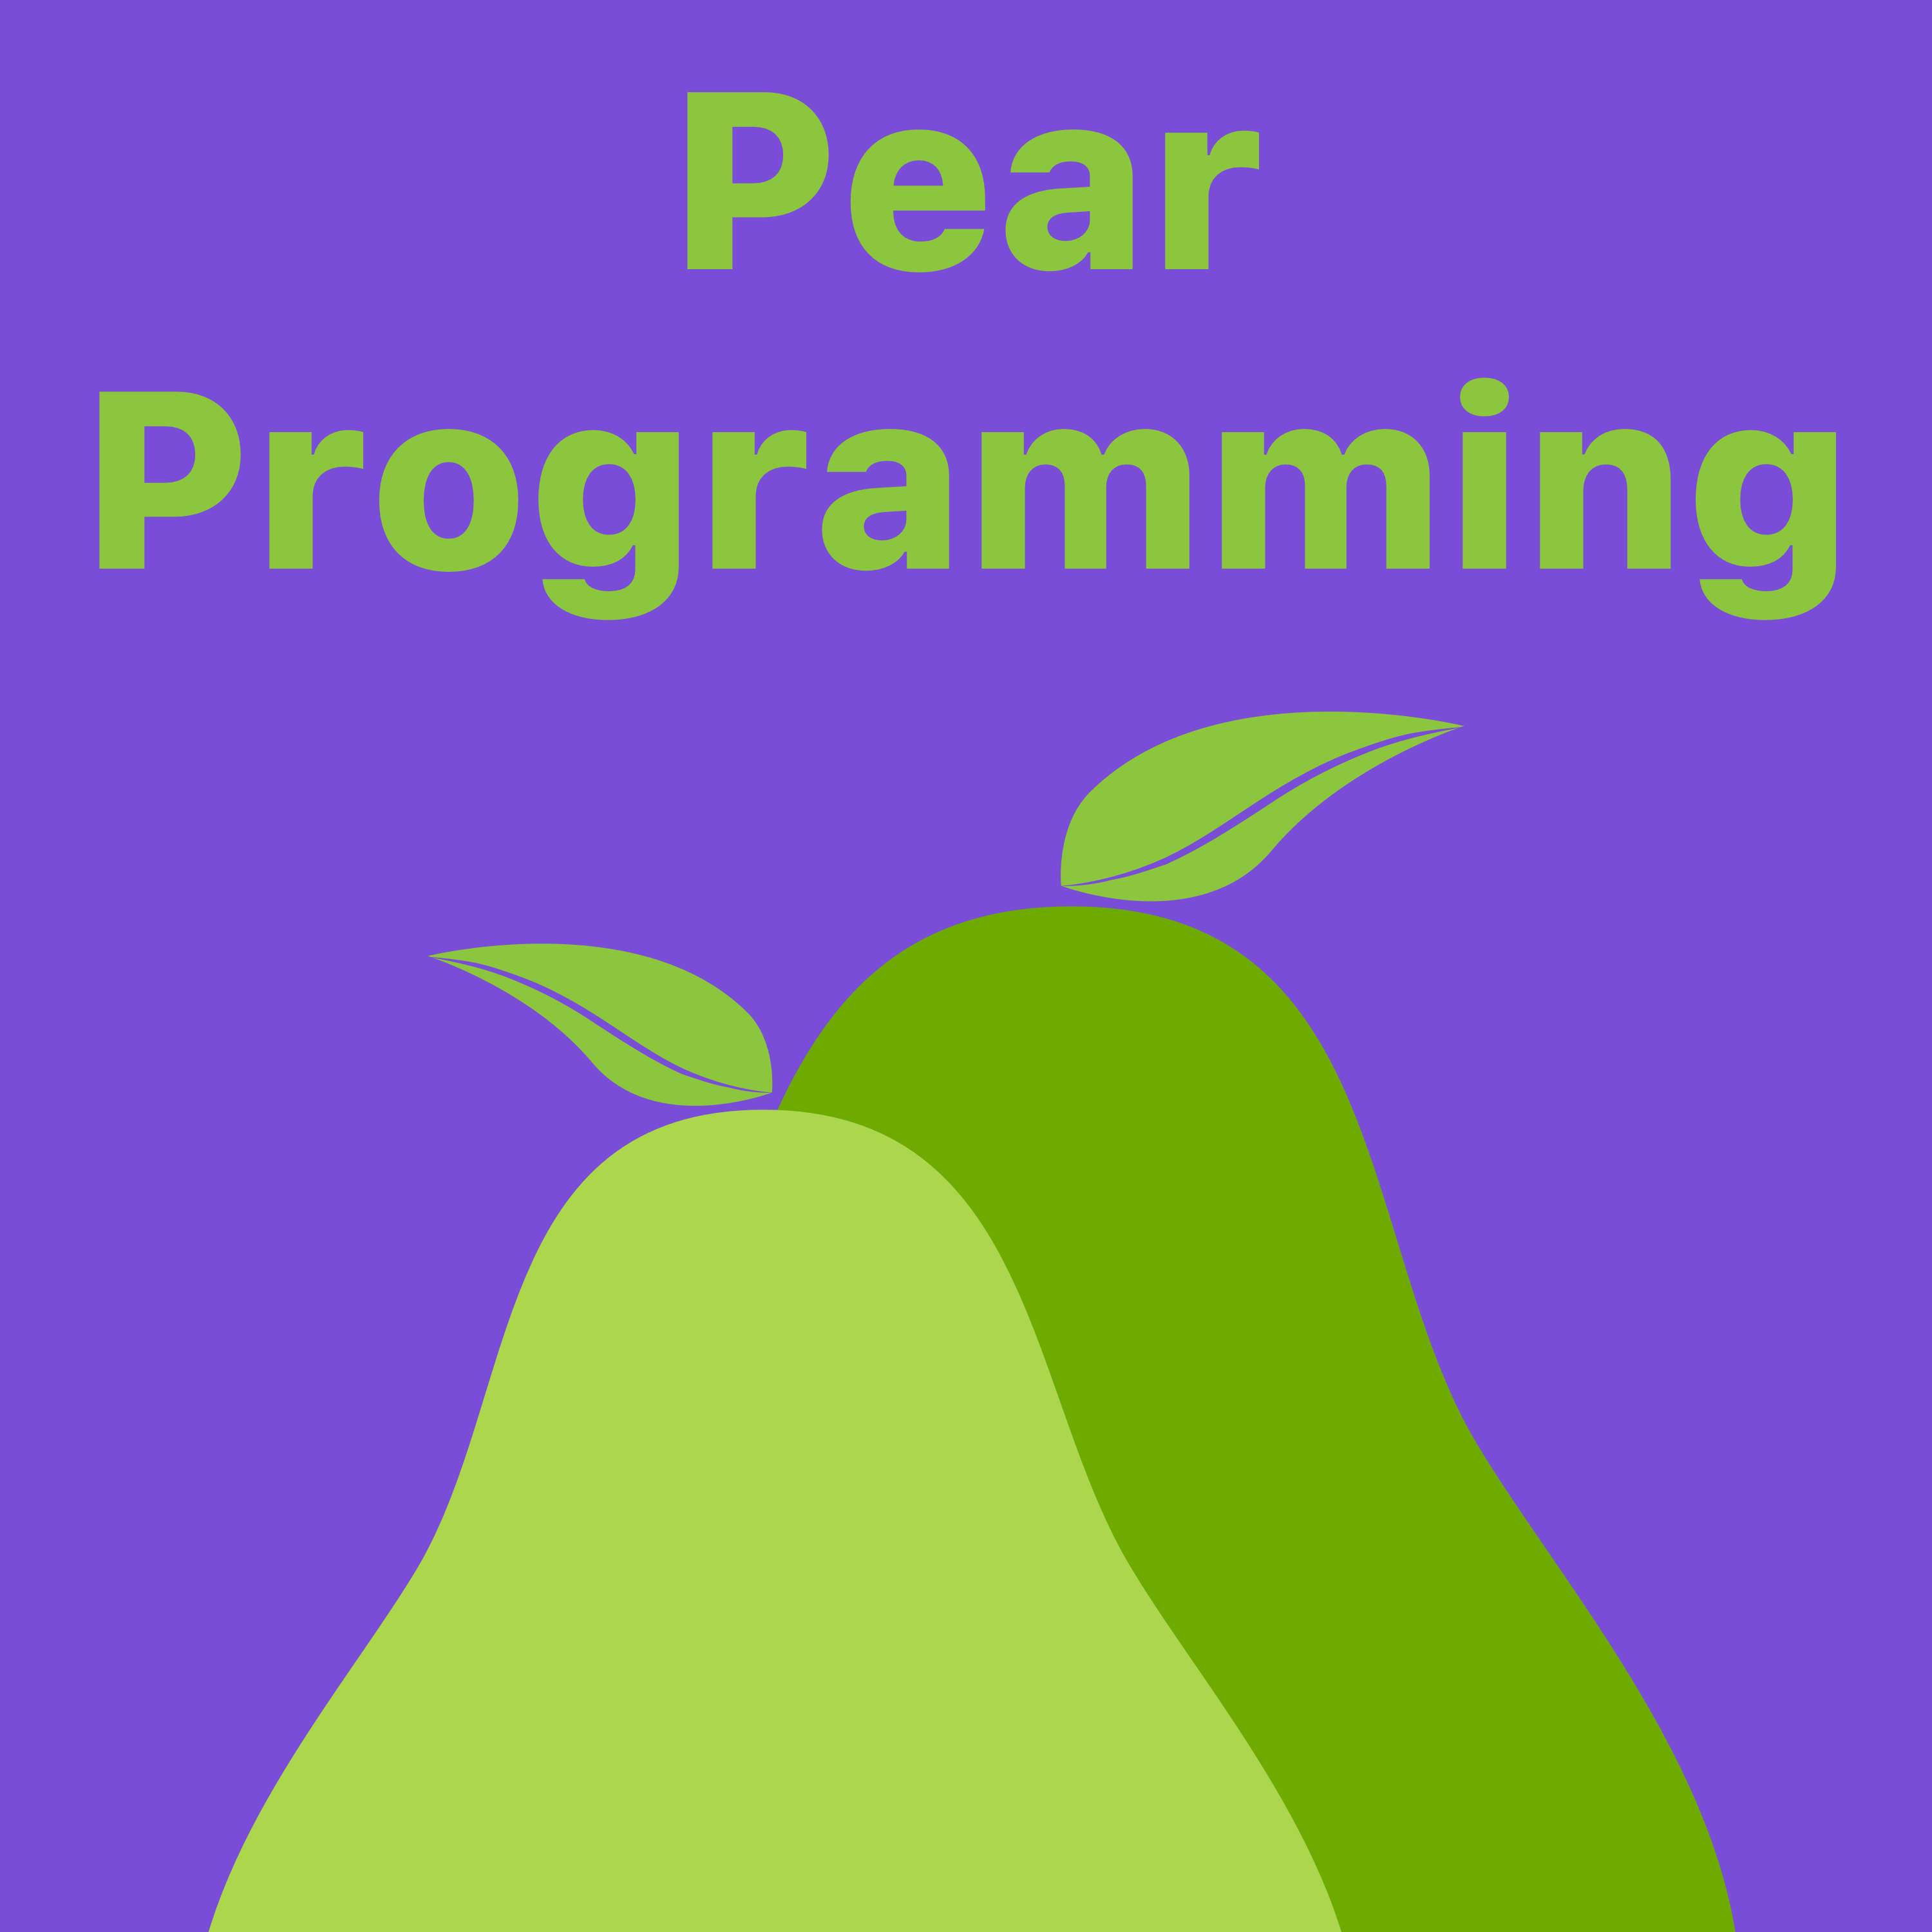 Pear 20programming 202 20pears 20copy 202